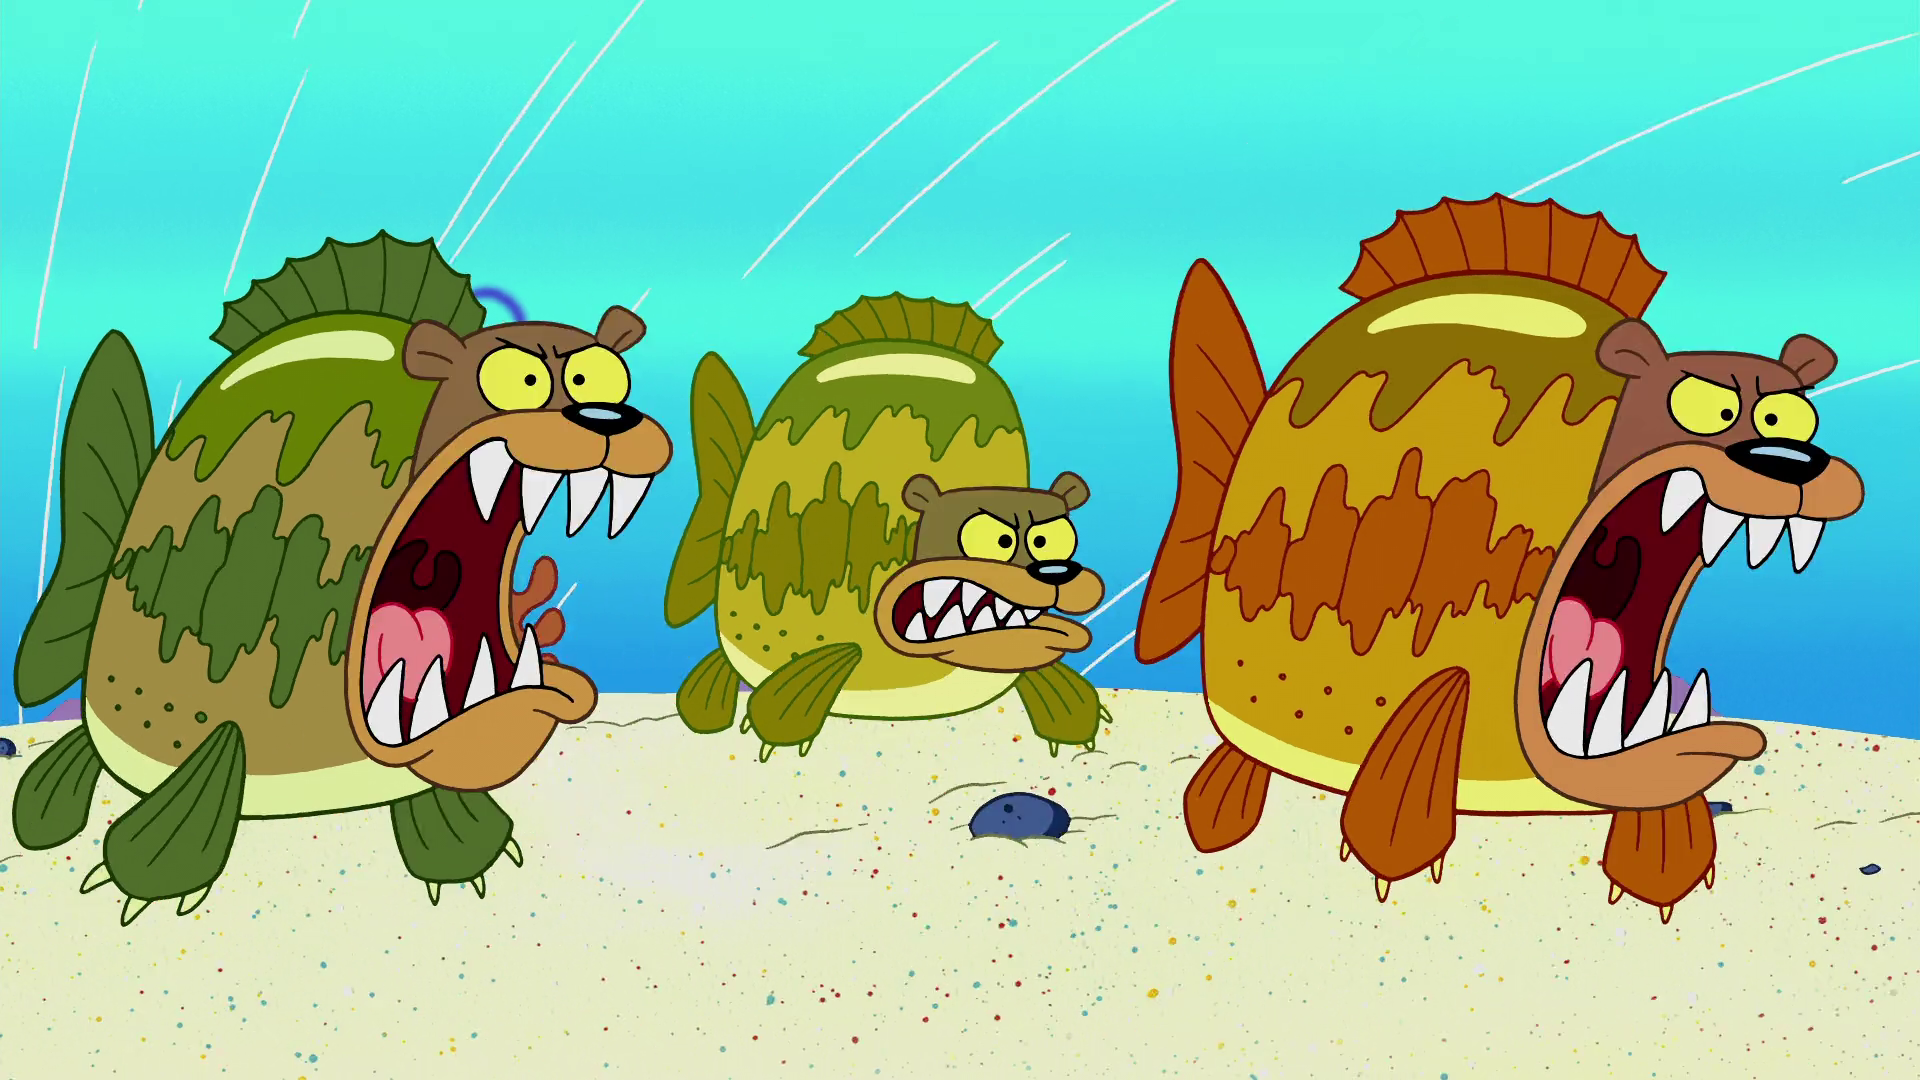 Sea Bear Fiction Taxonomy Wiki Fandom They are signed to the morr music record label. fiction taxonomy wiki fandom